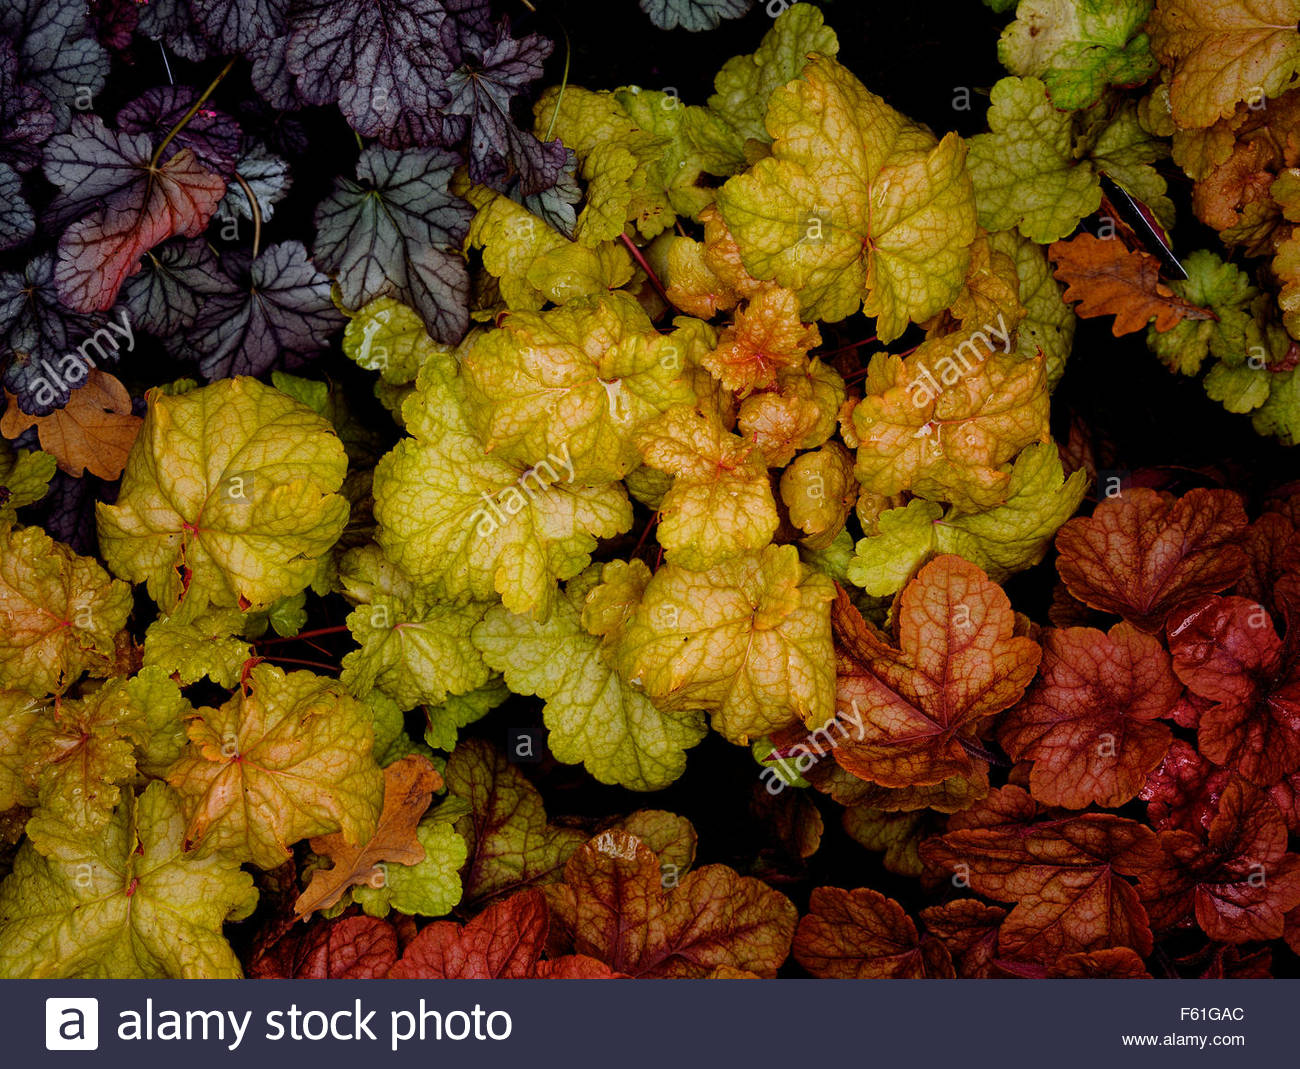 assortment of different colored Heuchera, Saxifragaceae - Stock Image